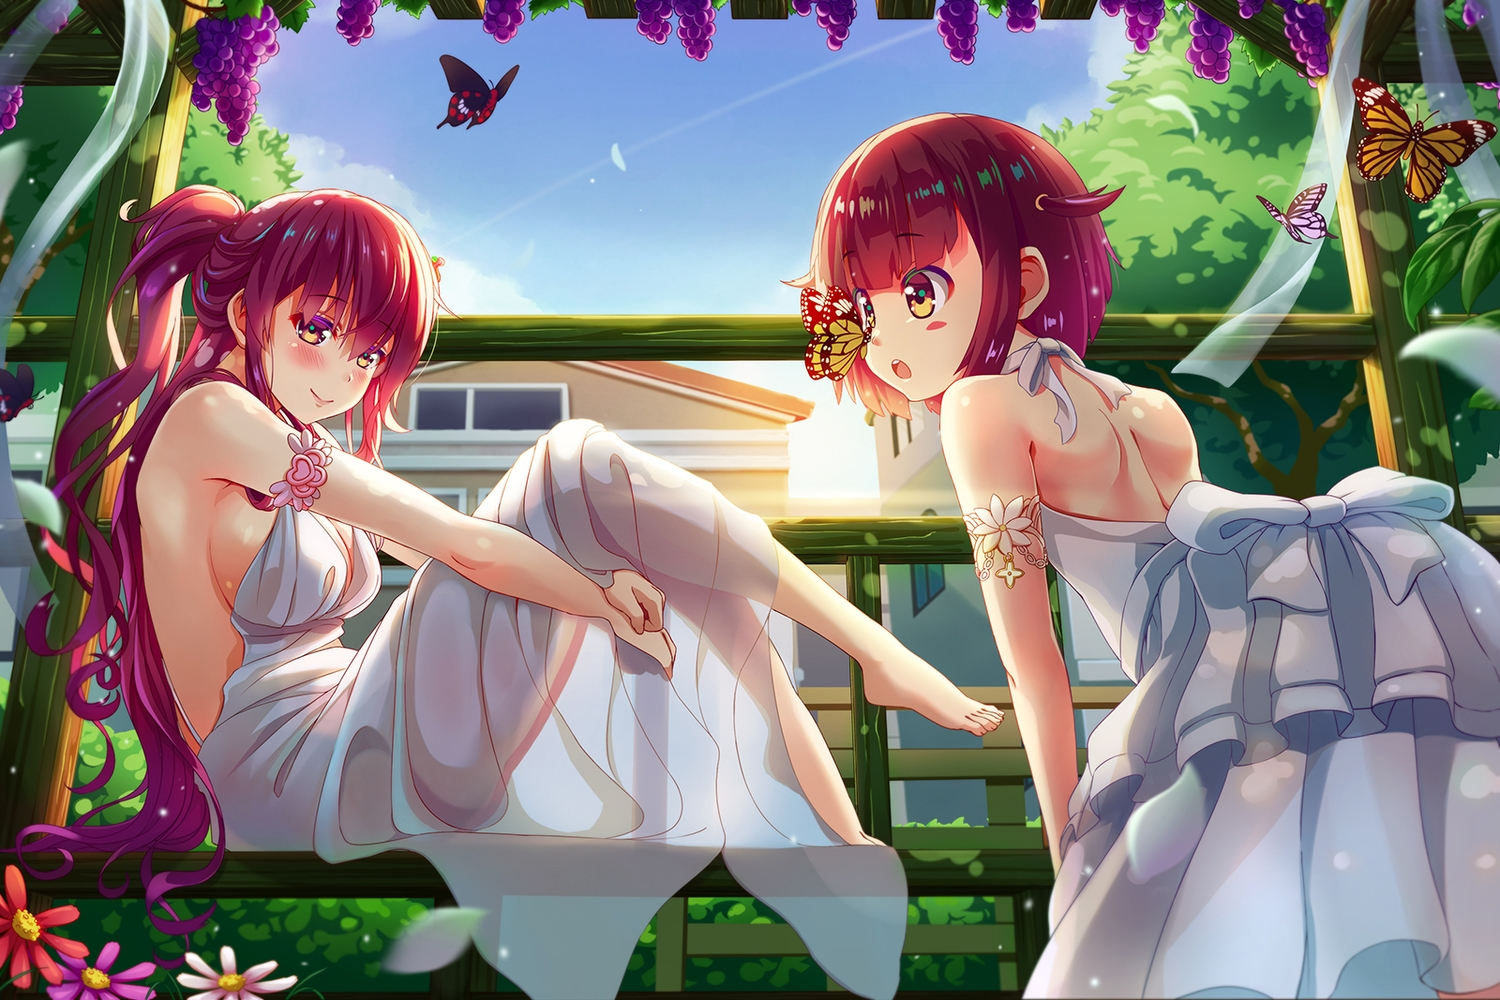 2girls blush bow breasts butterfly cleavage dress flowers food fruit long_hair no_bra original ponytail red_hair see_through short_hair sideboob yellow_eyes zongmao